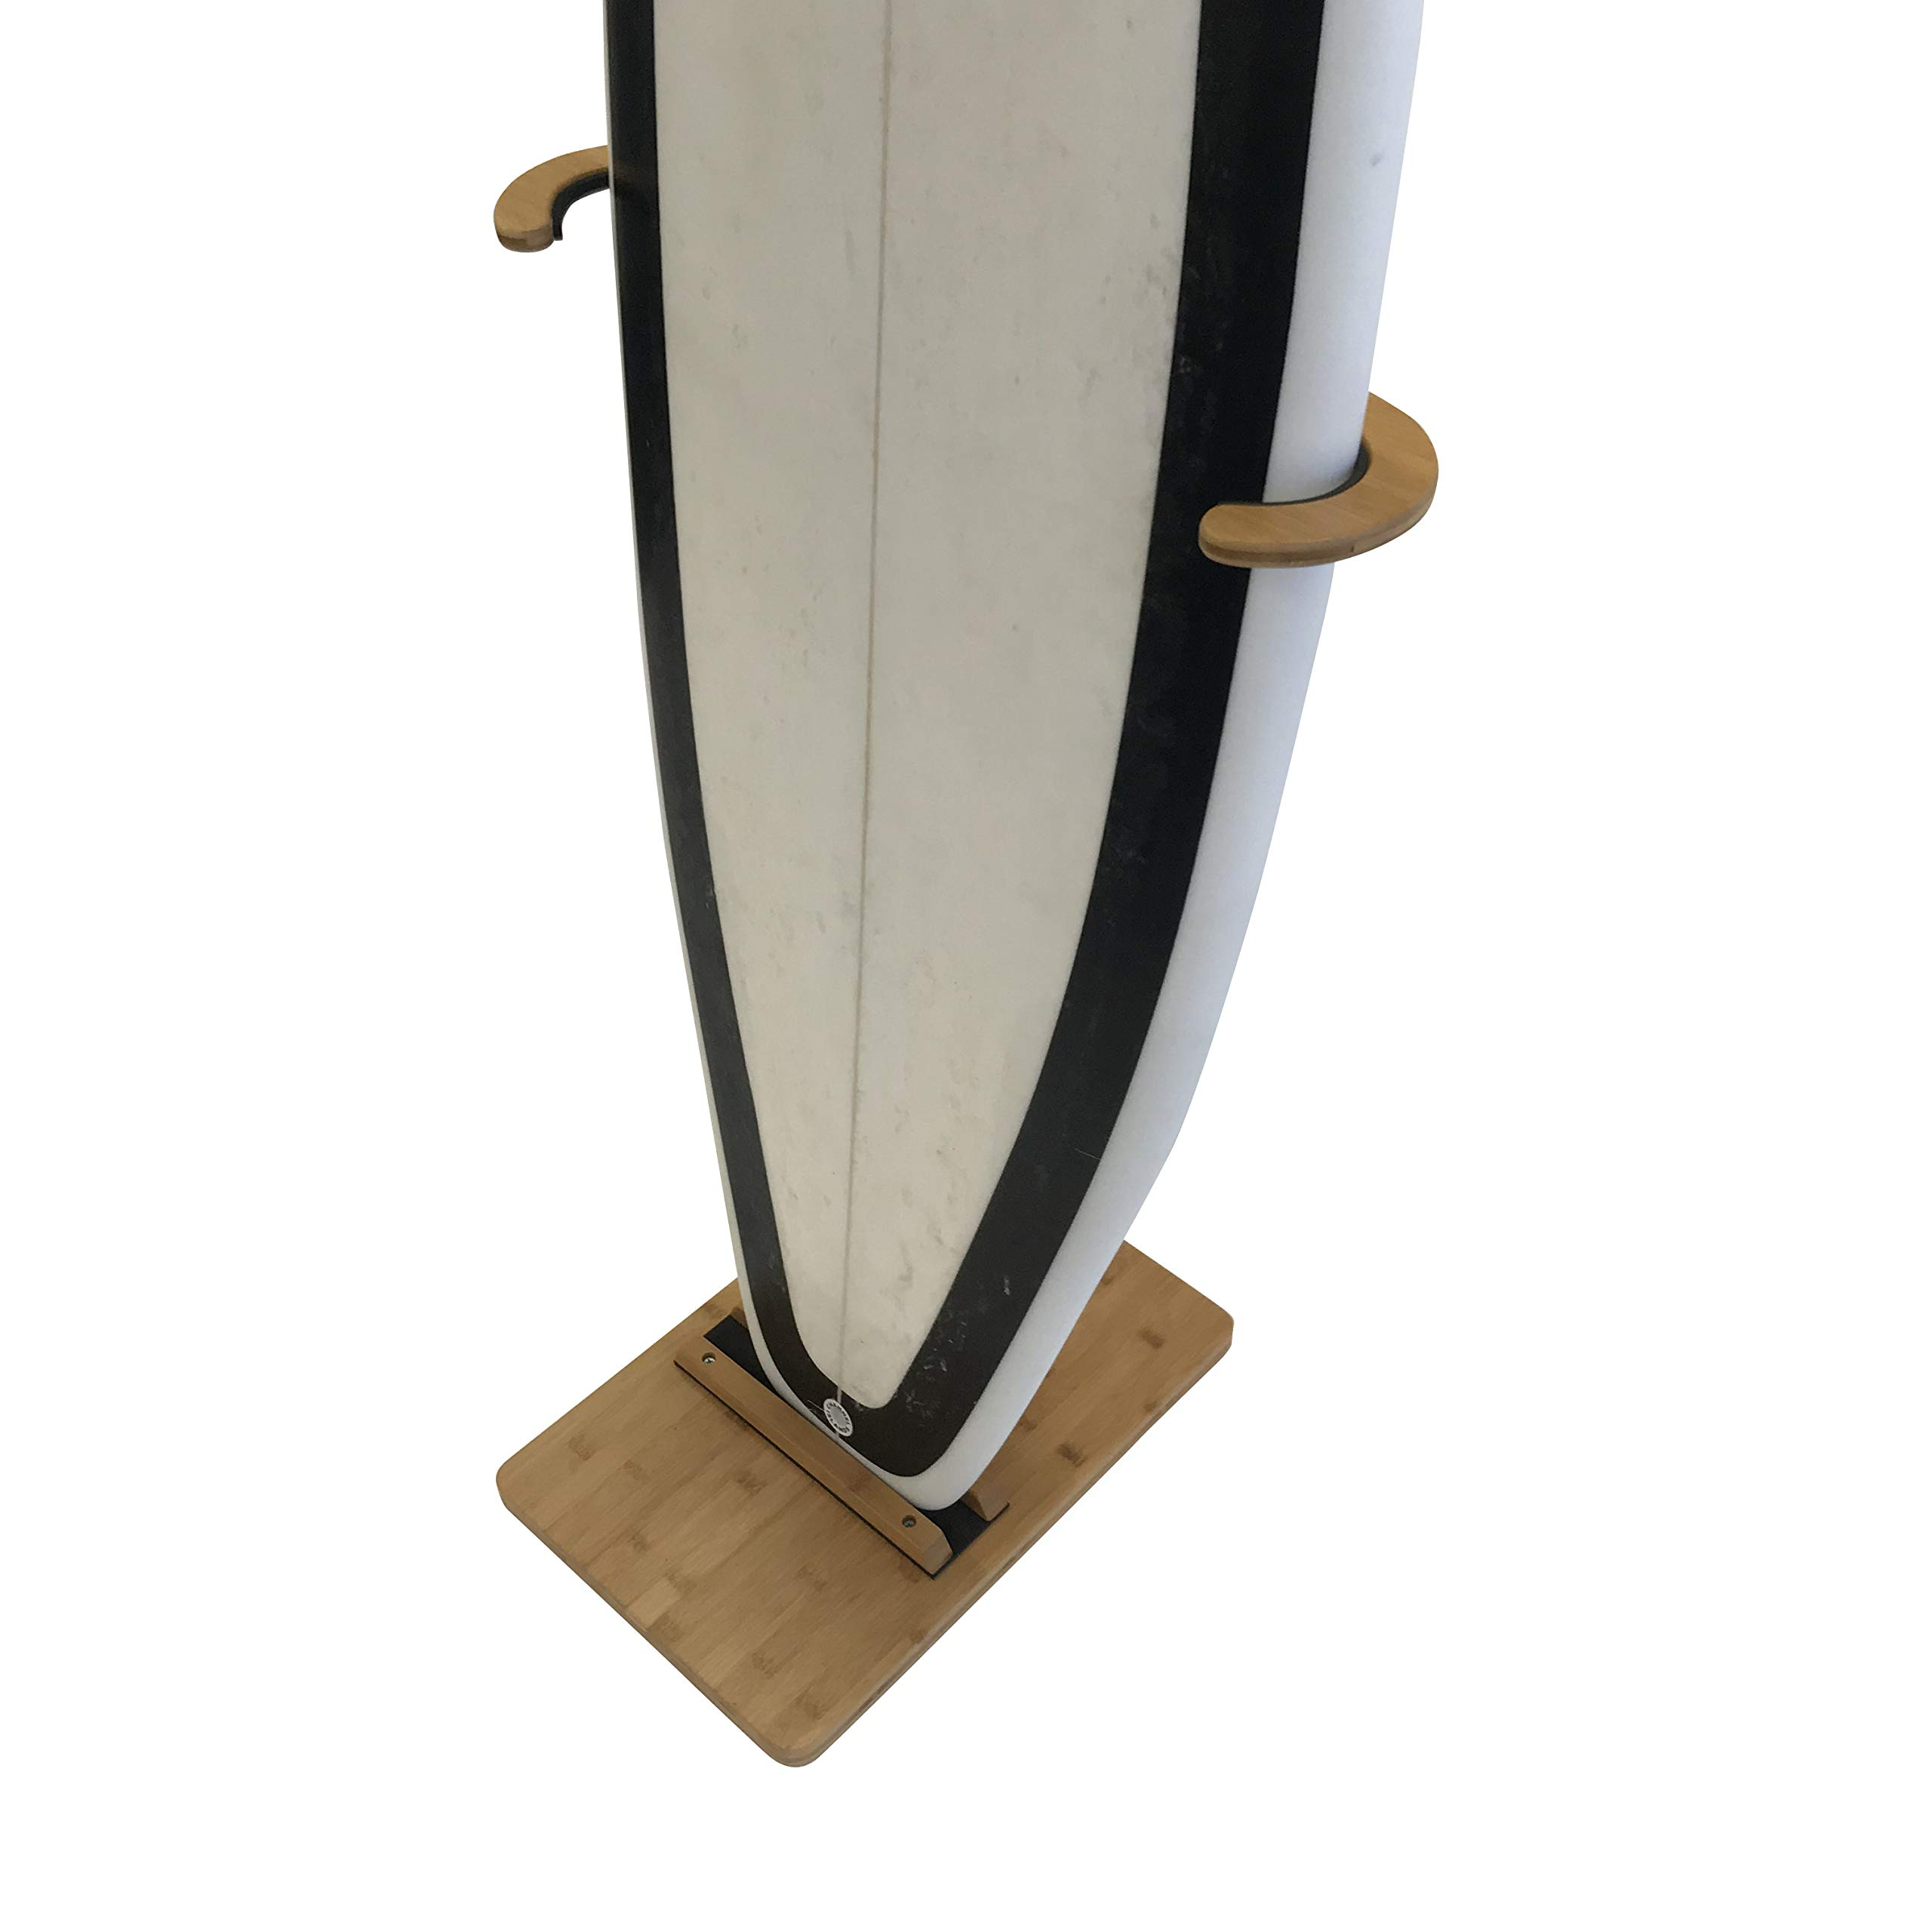 Cor Surf Bamboo Surfboard Stand | Premium Standing Rack to Display Your Board by COR Surf